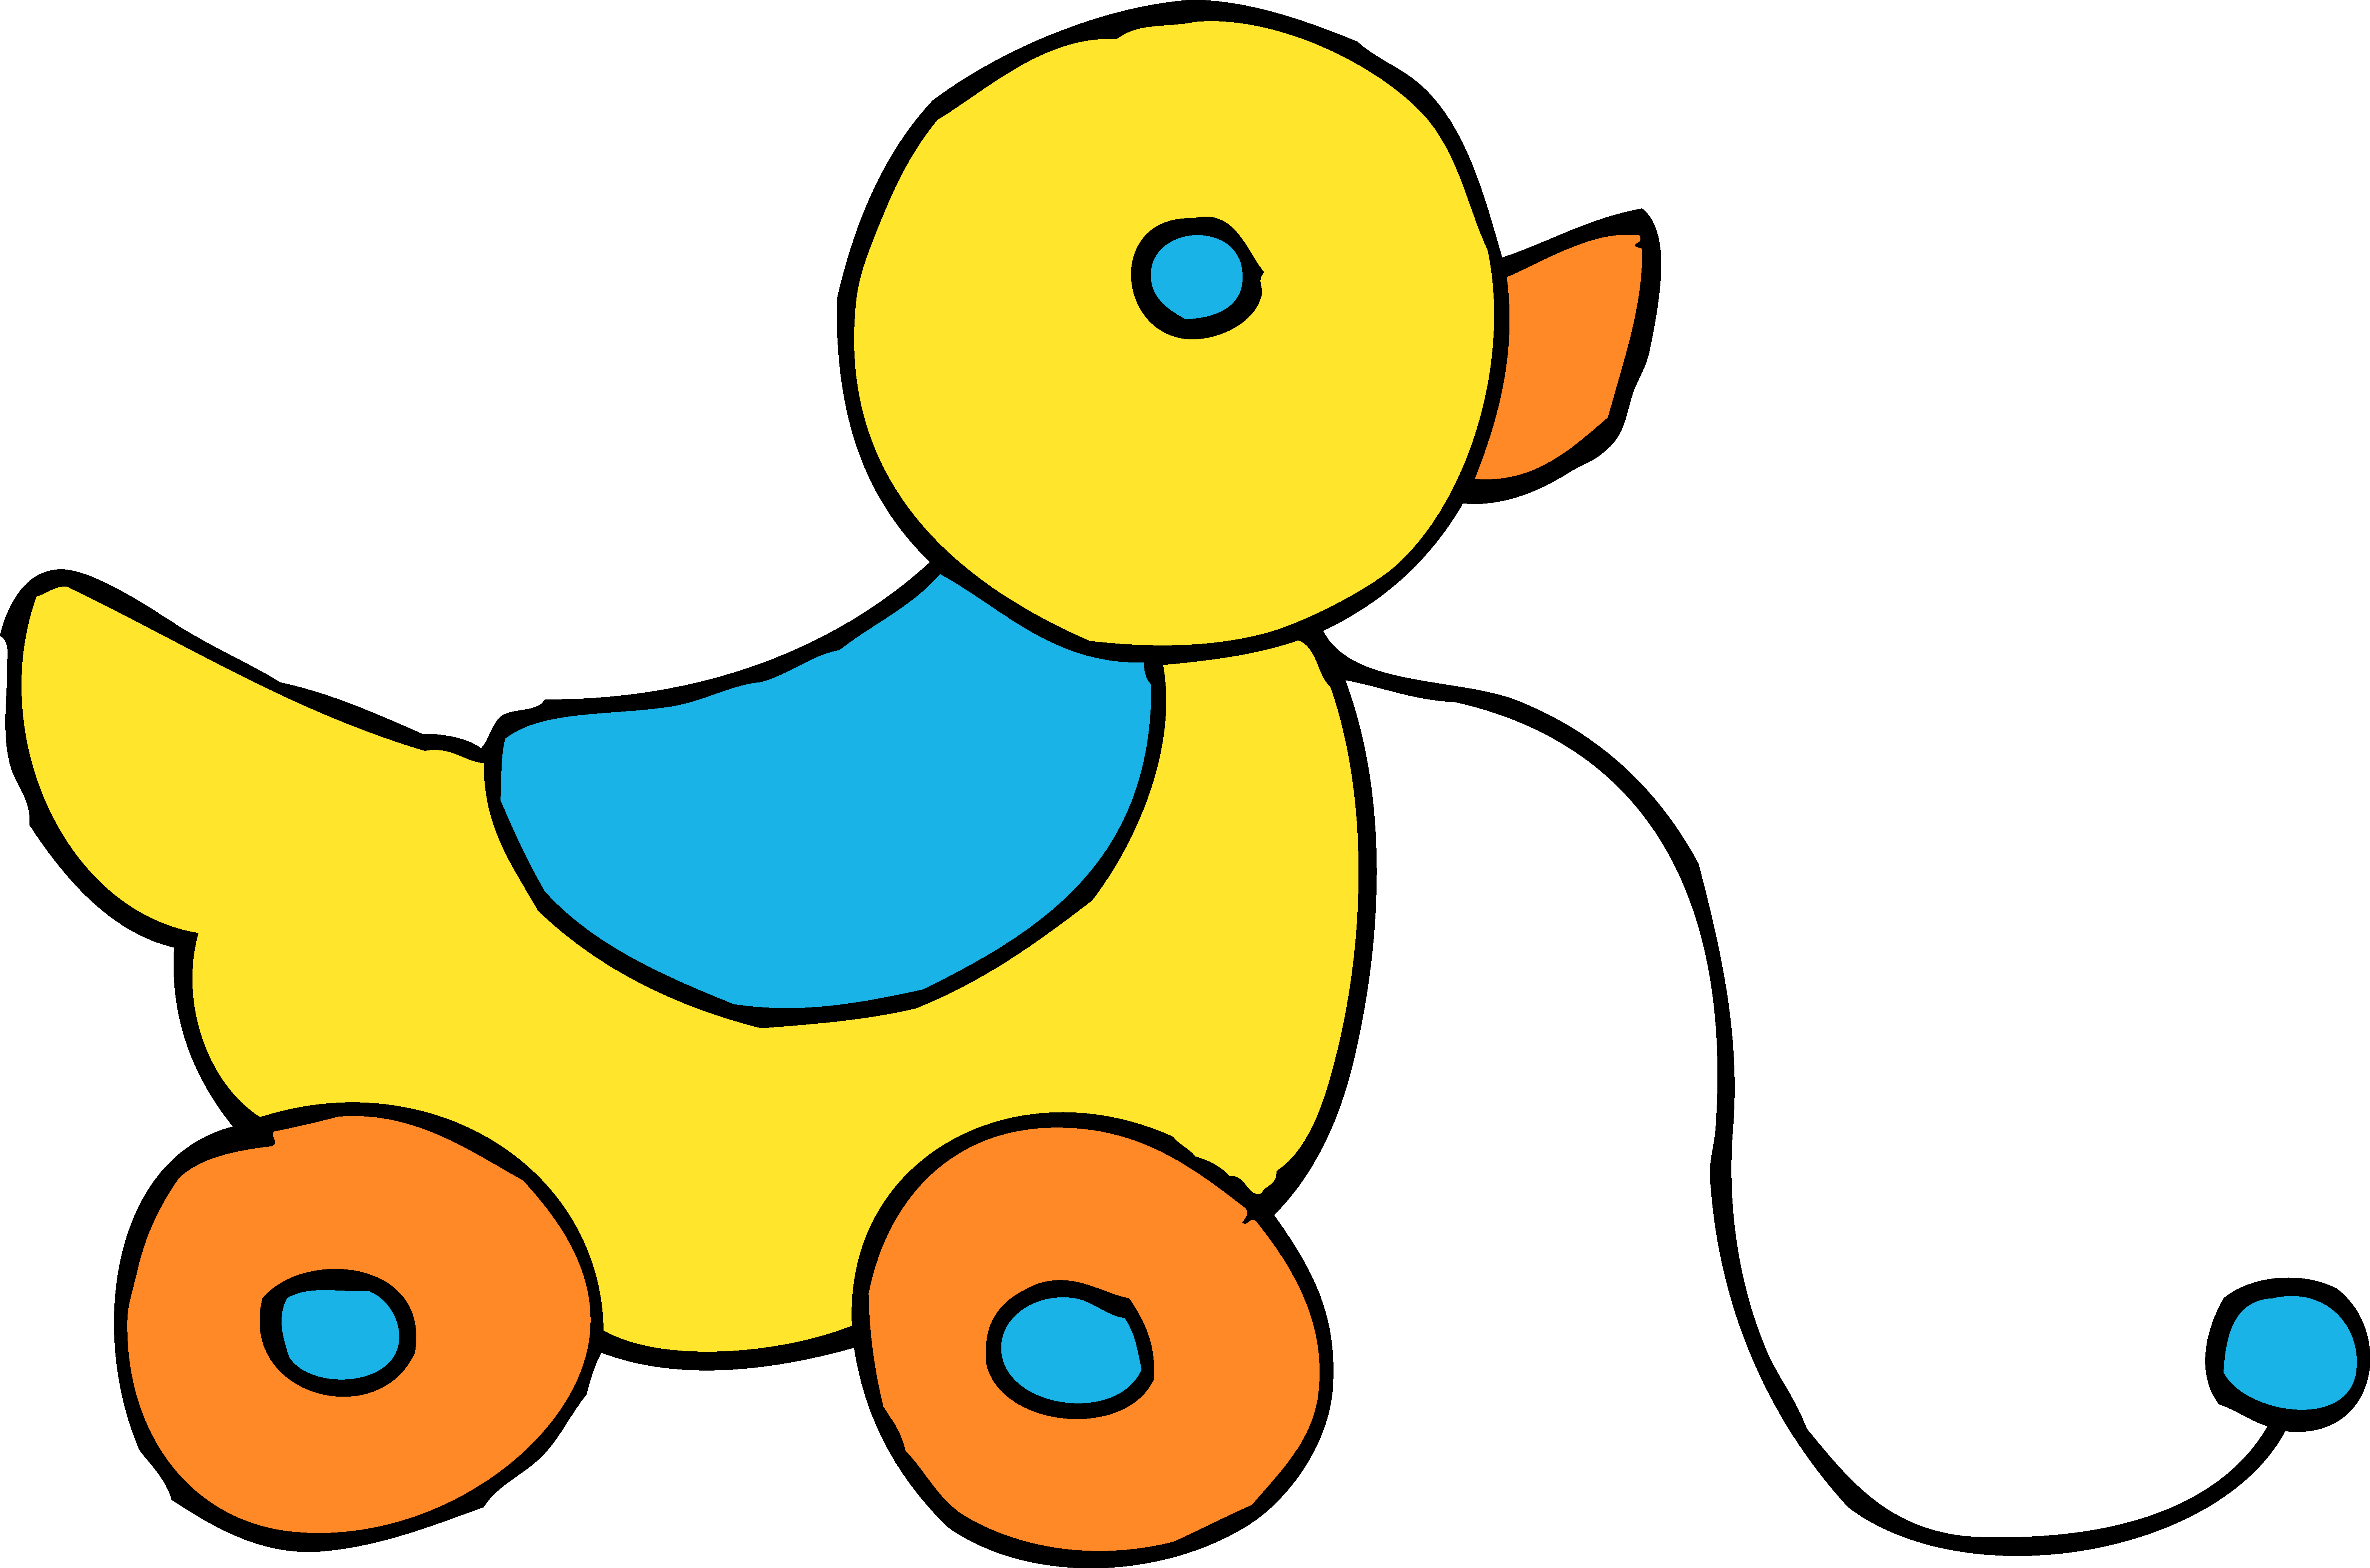 Rolling Yellow Ducky Toy Clipart - Free Clip Art